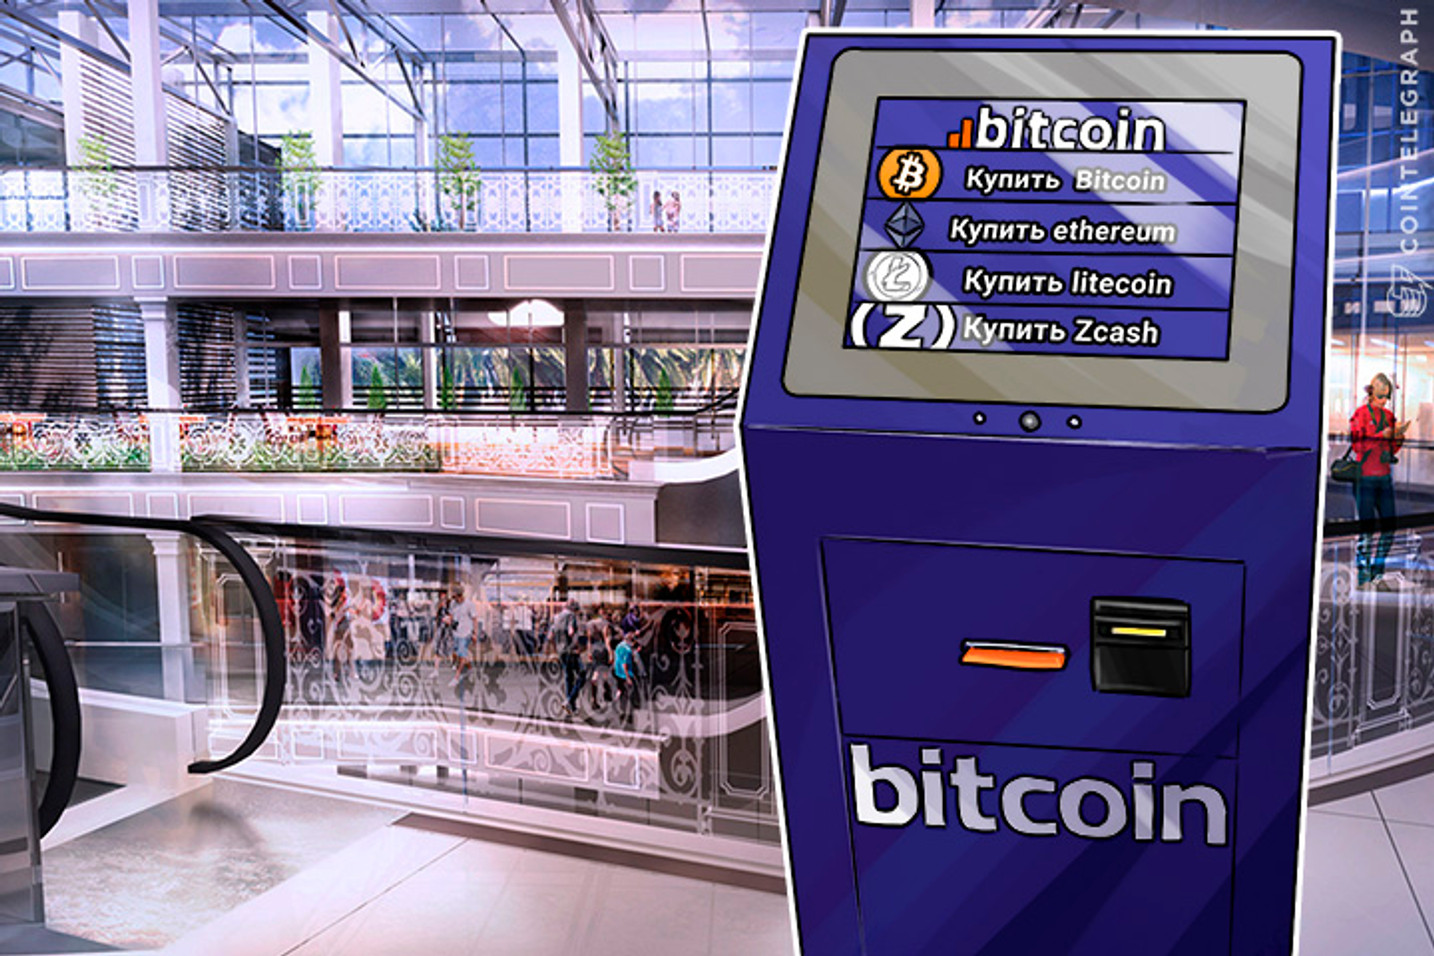 Russia Gains Bitlish Bitcoin ATM in St. Petersburg First